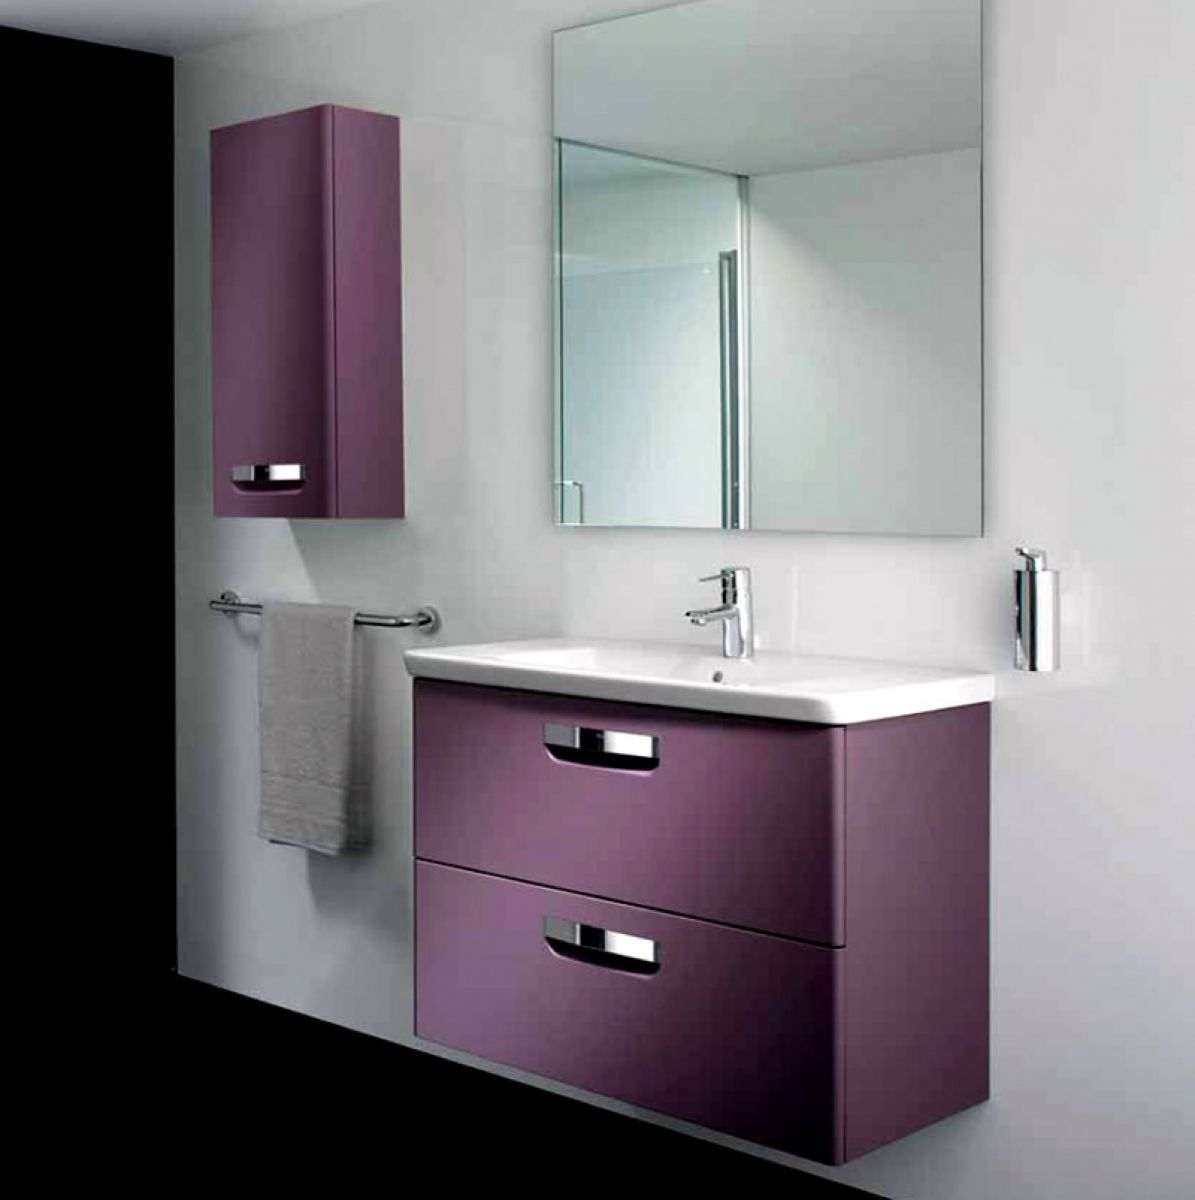 Amazing Click image to zoom roca bathroom furniture